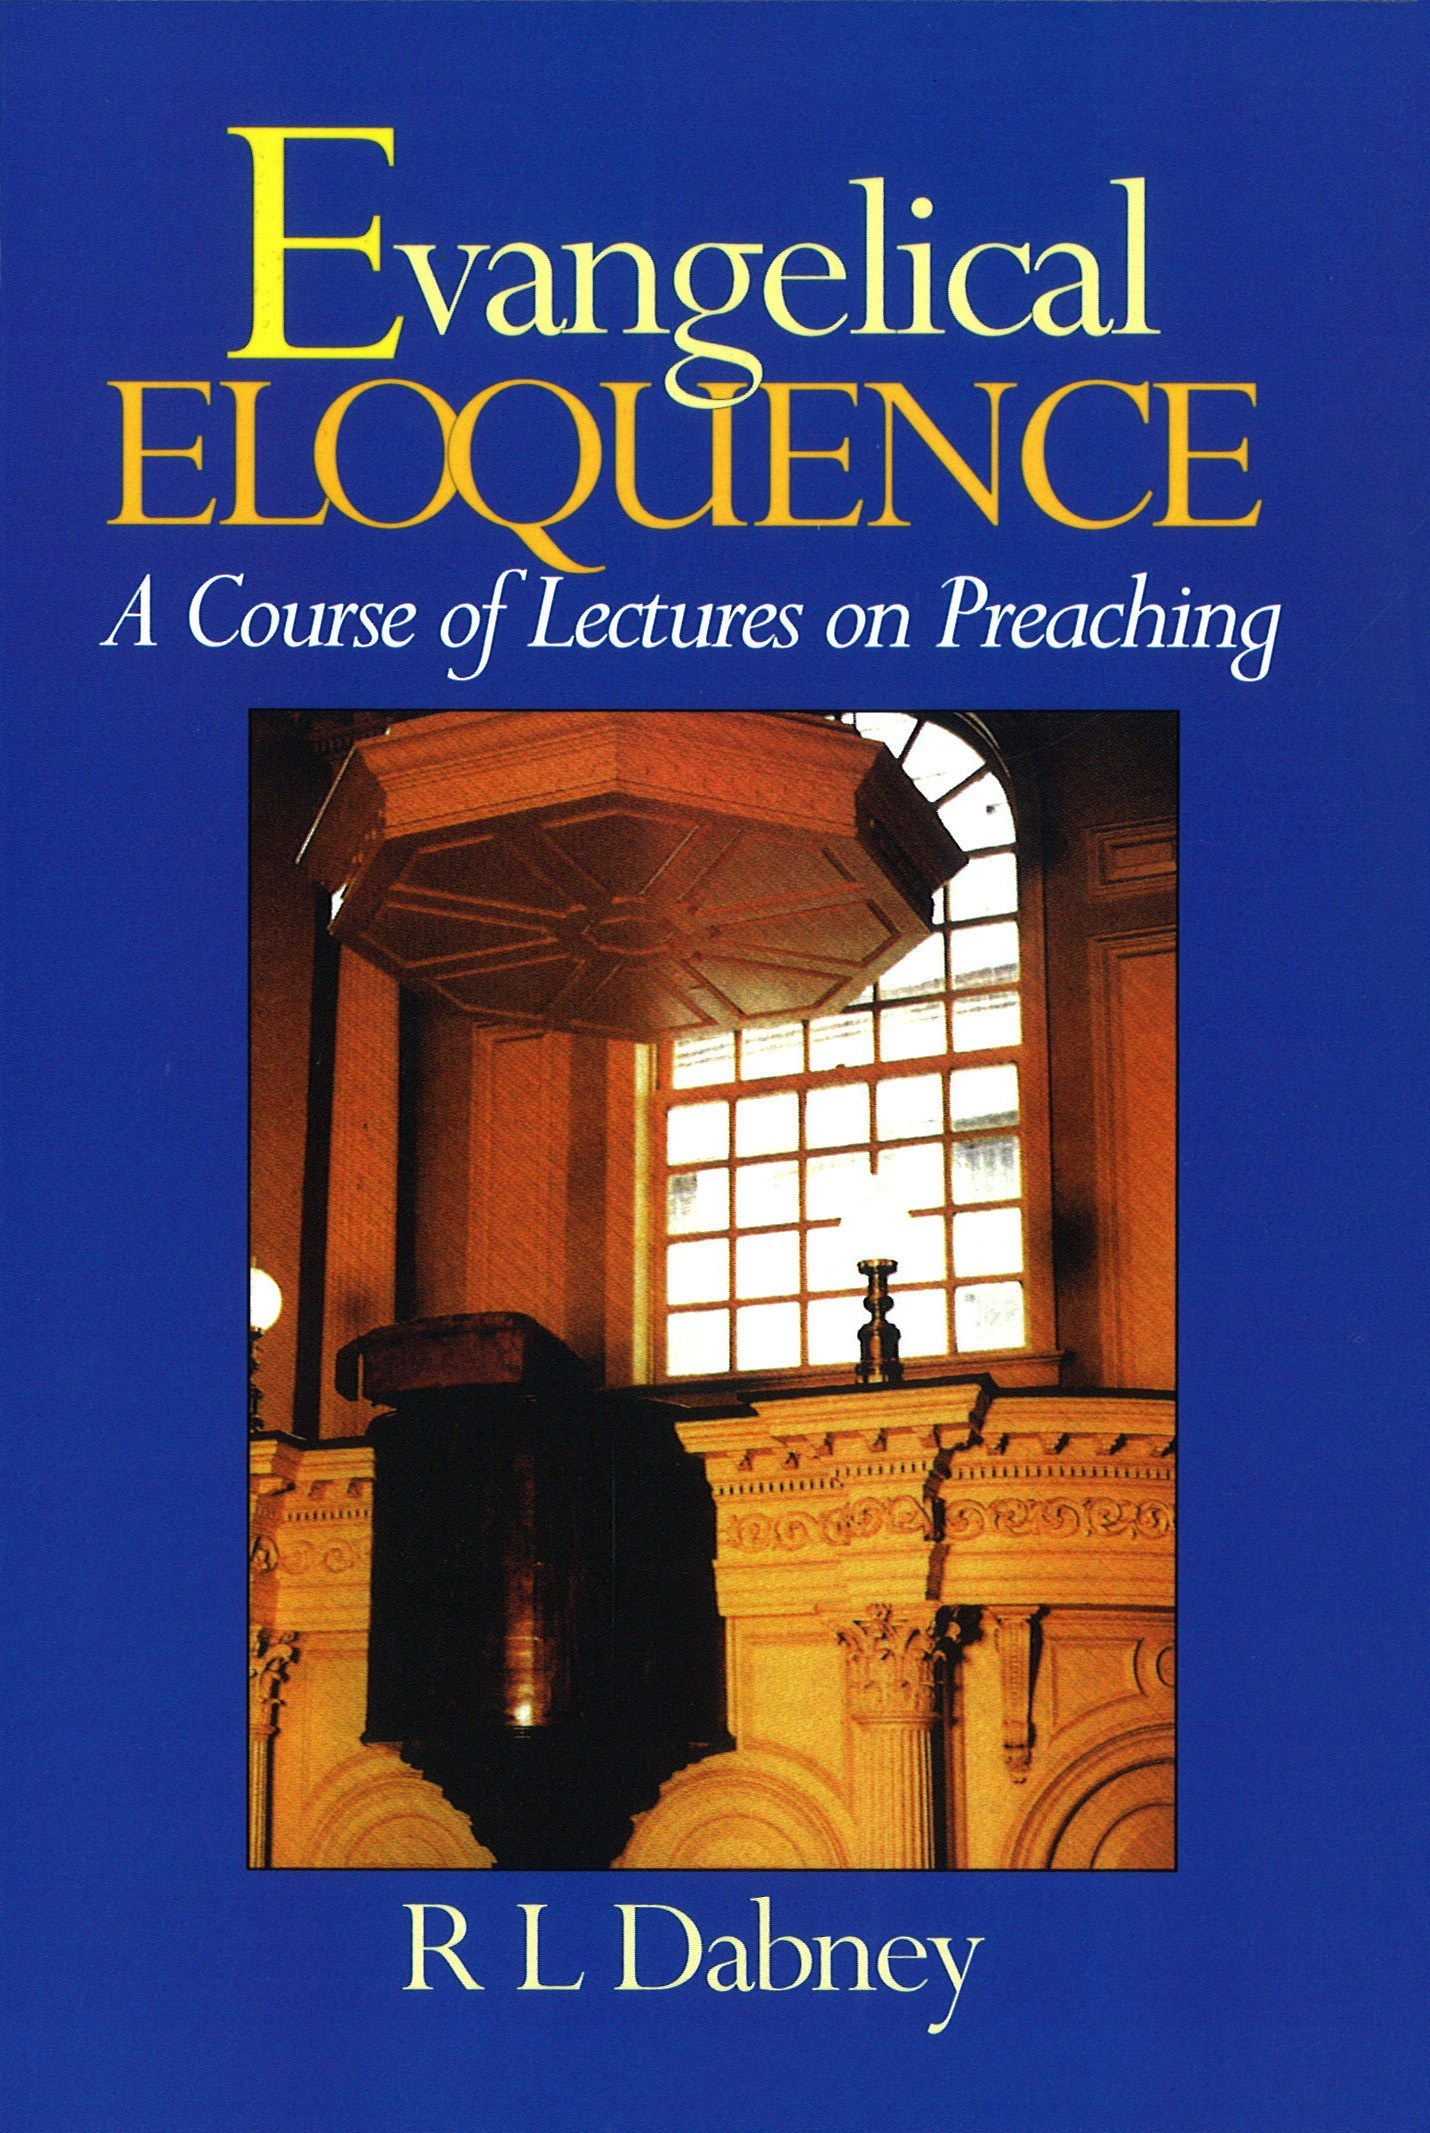 Book Cover For 'Evangelical Eloquence'